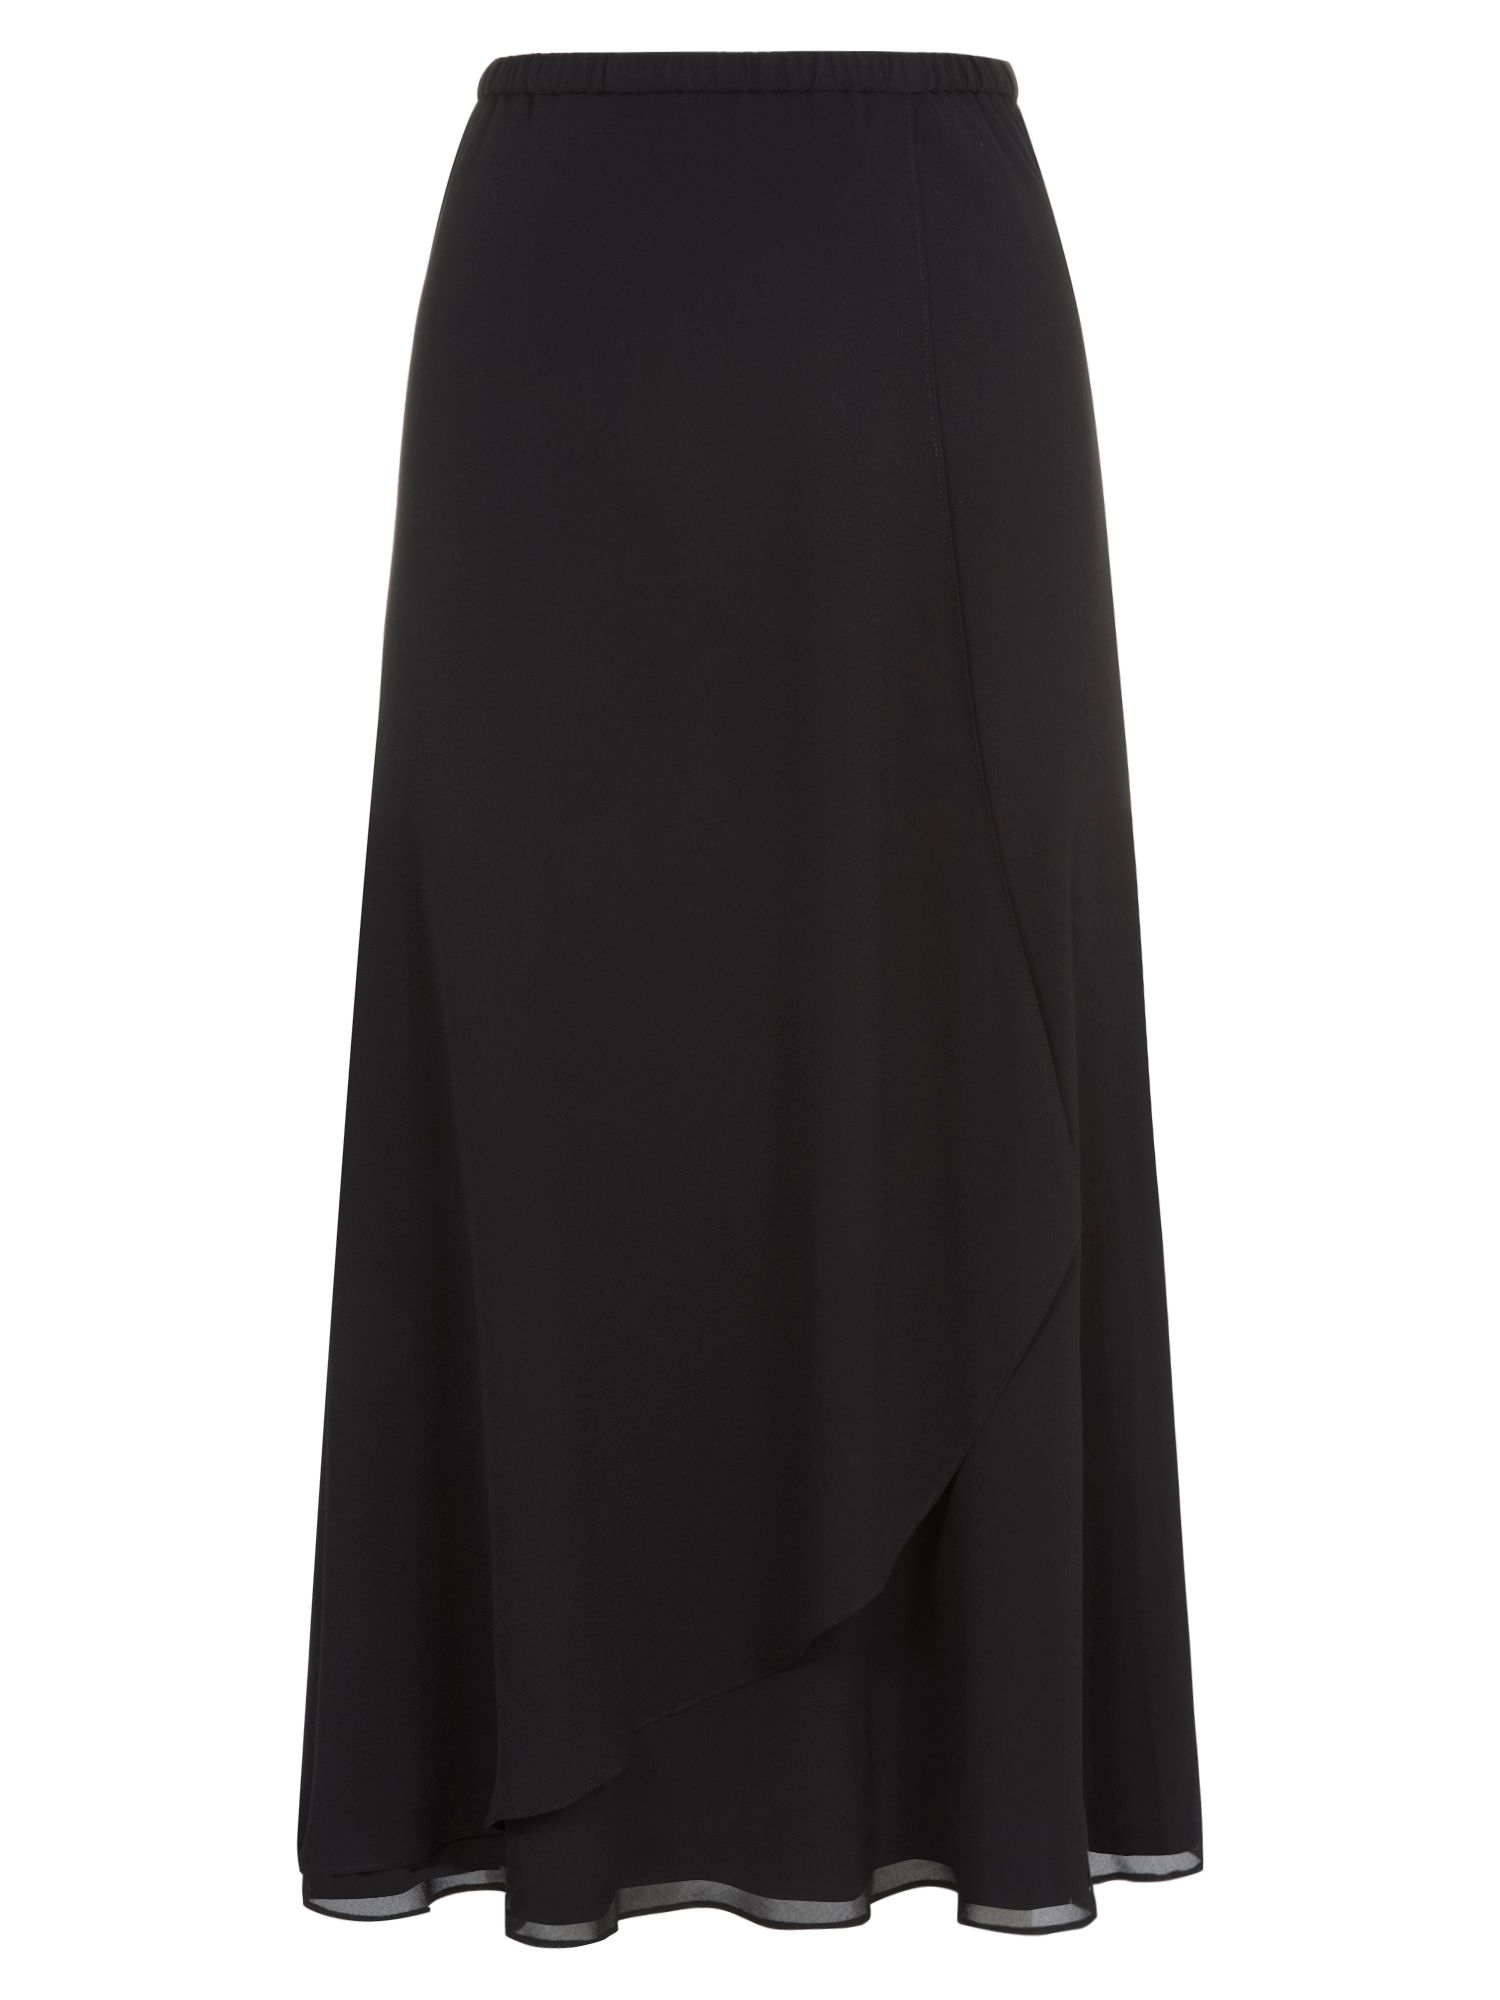 Waterfall front chiffon skirt